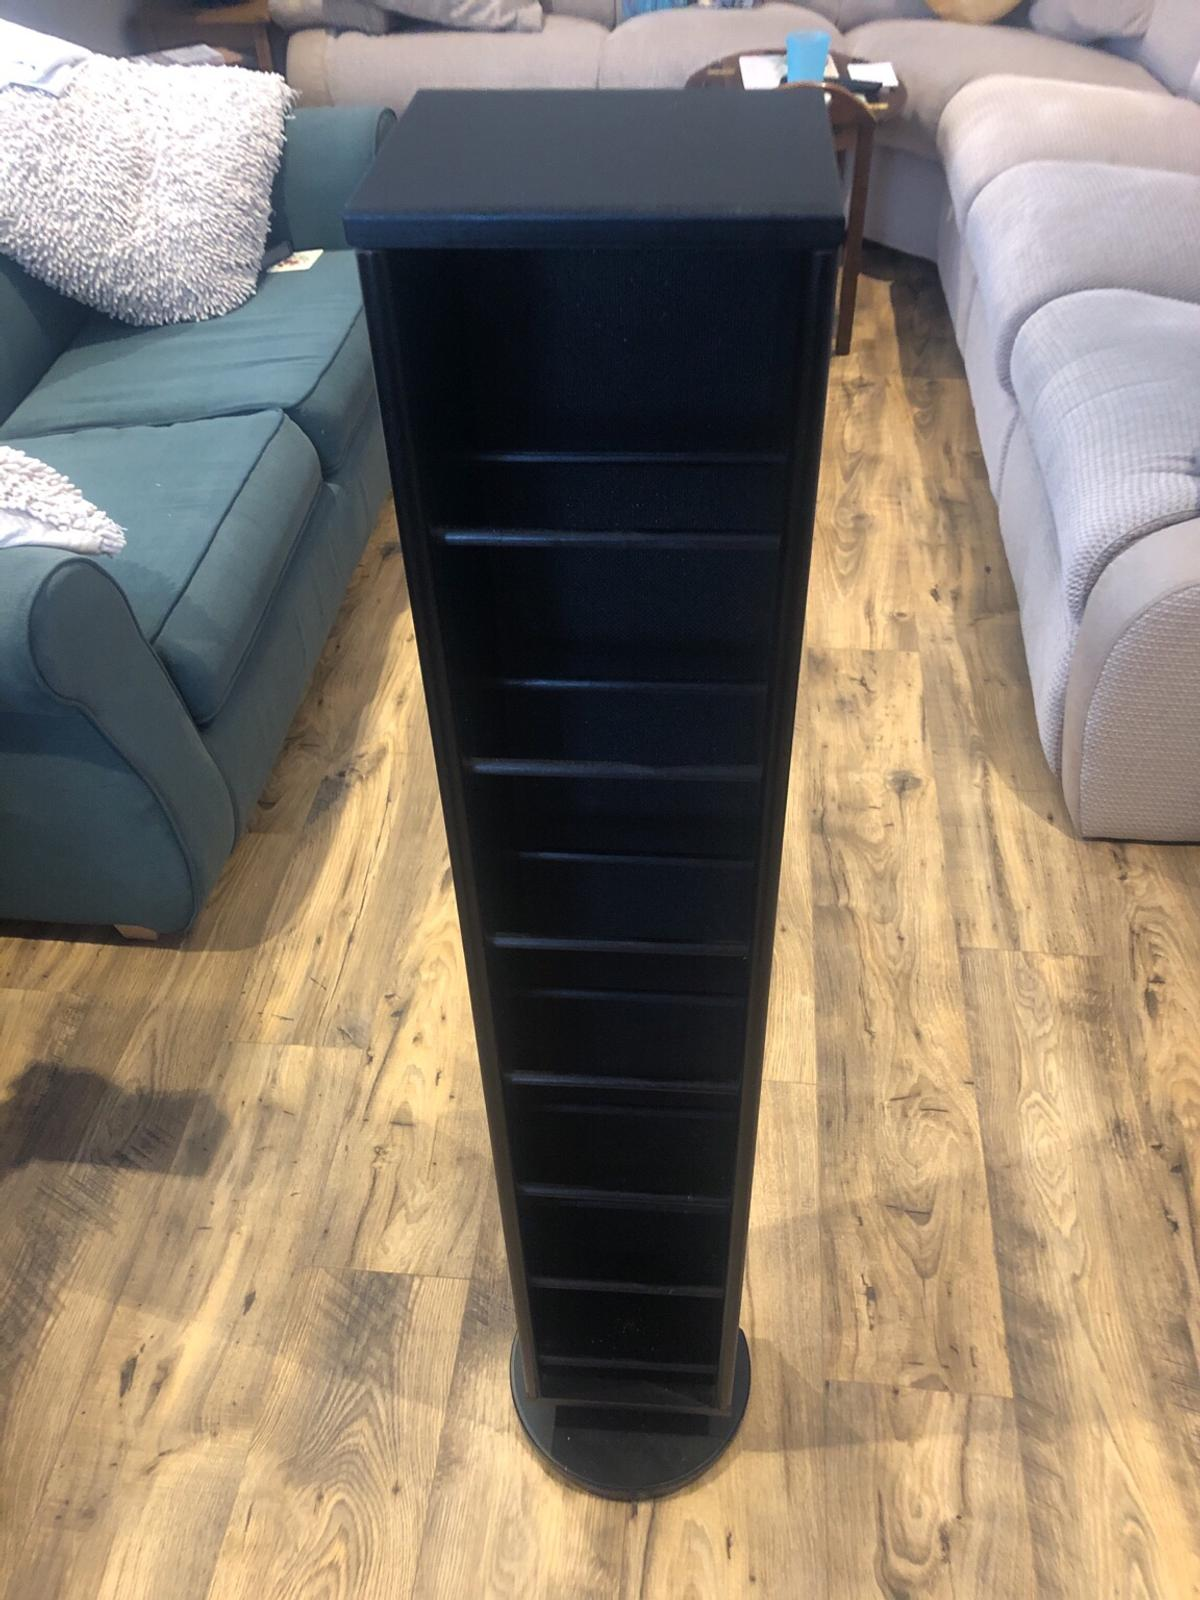 Black, wooden CD tower stand on rotating base.